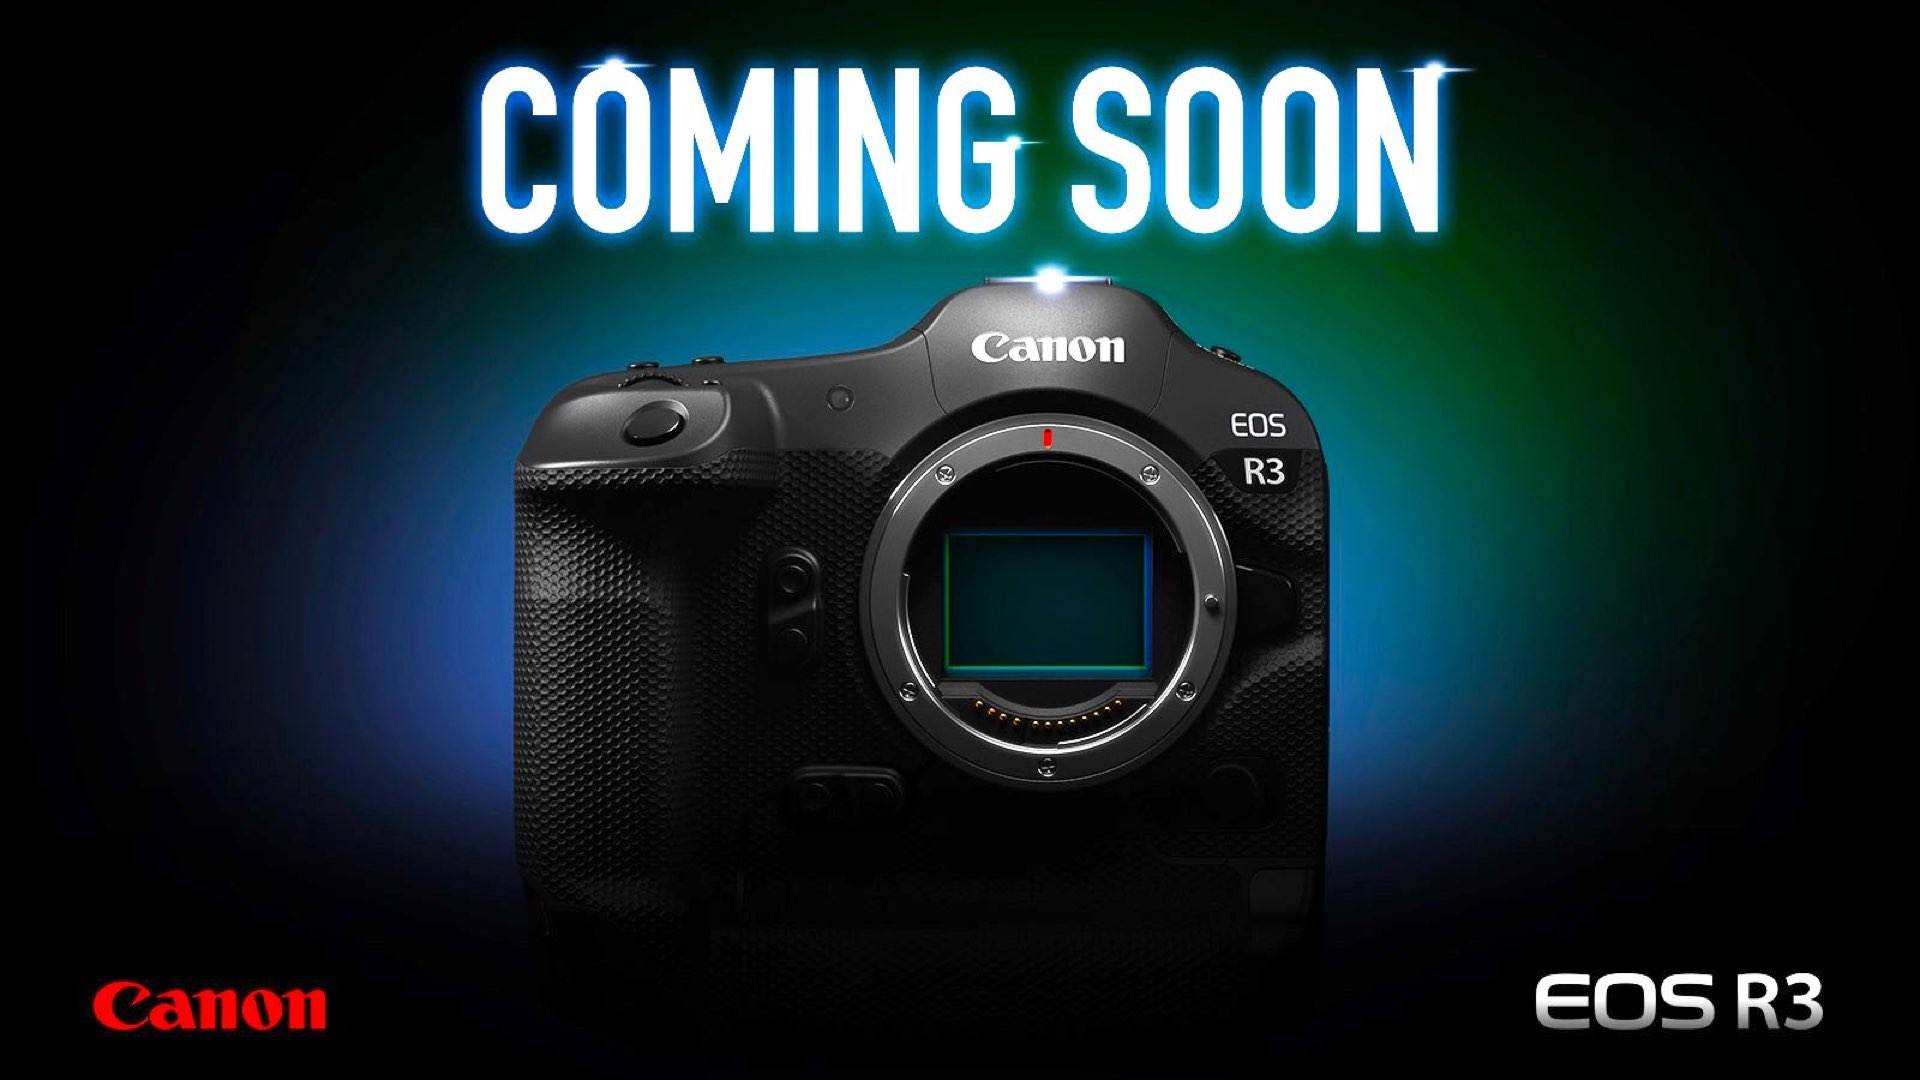 Canon Announces Development of EOS R3: A New Flagship Made For Speed